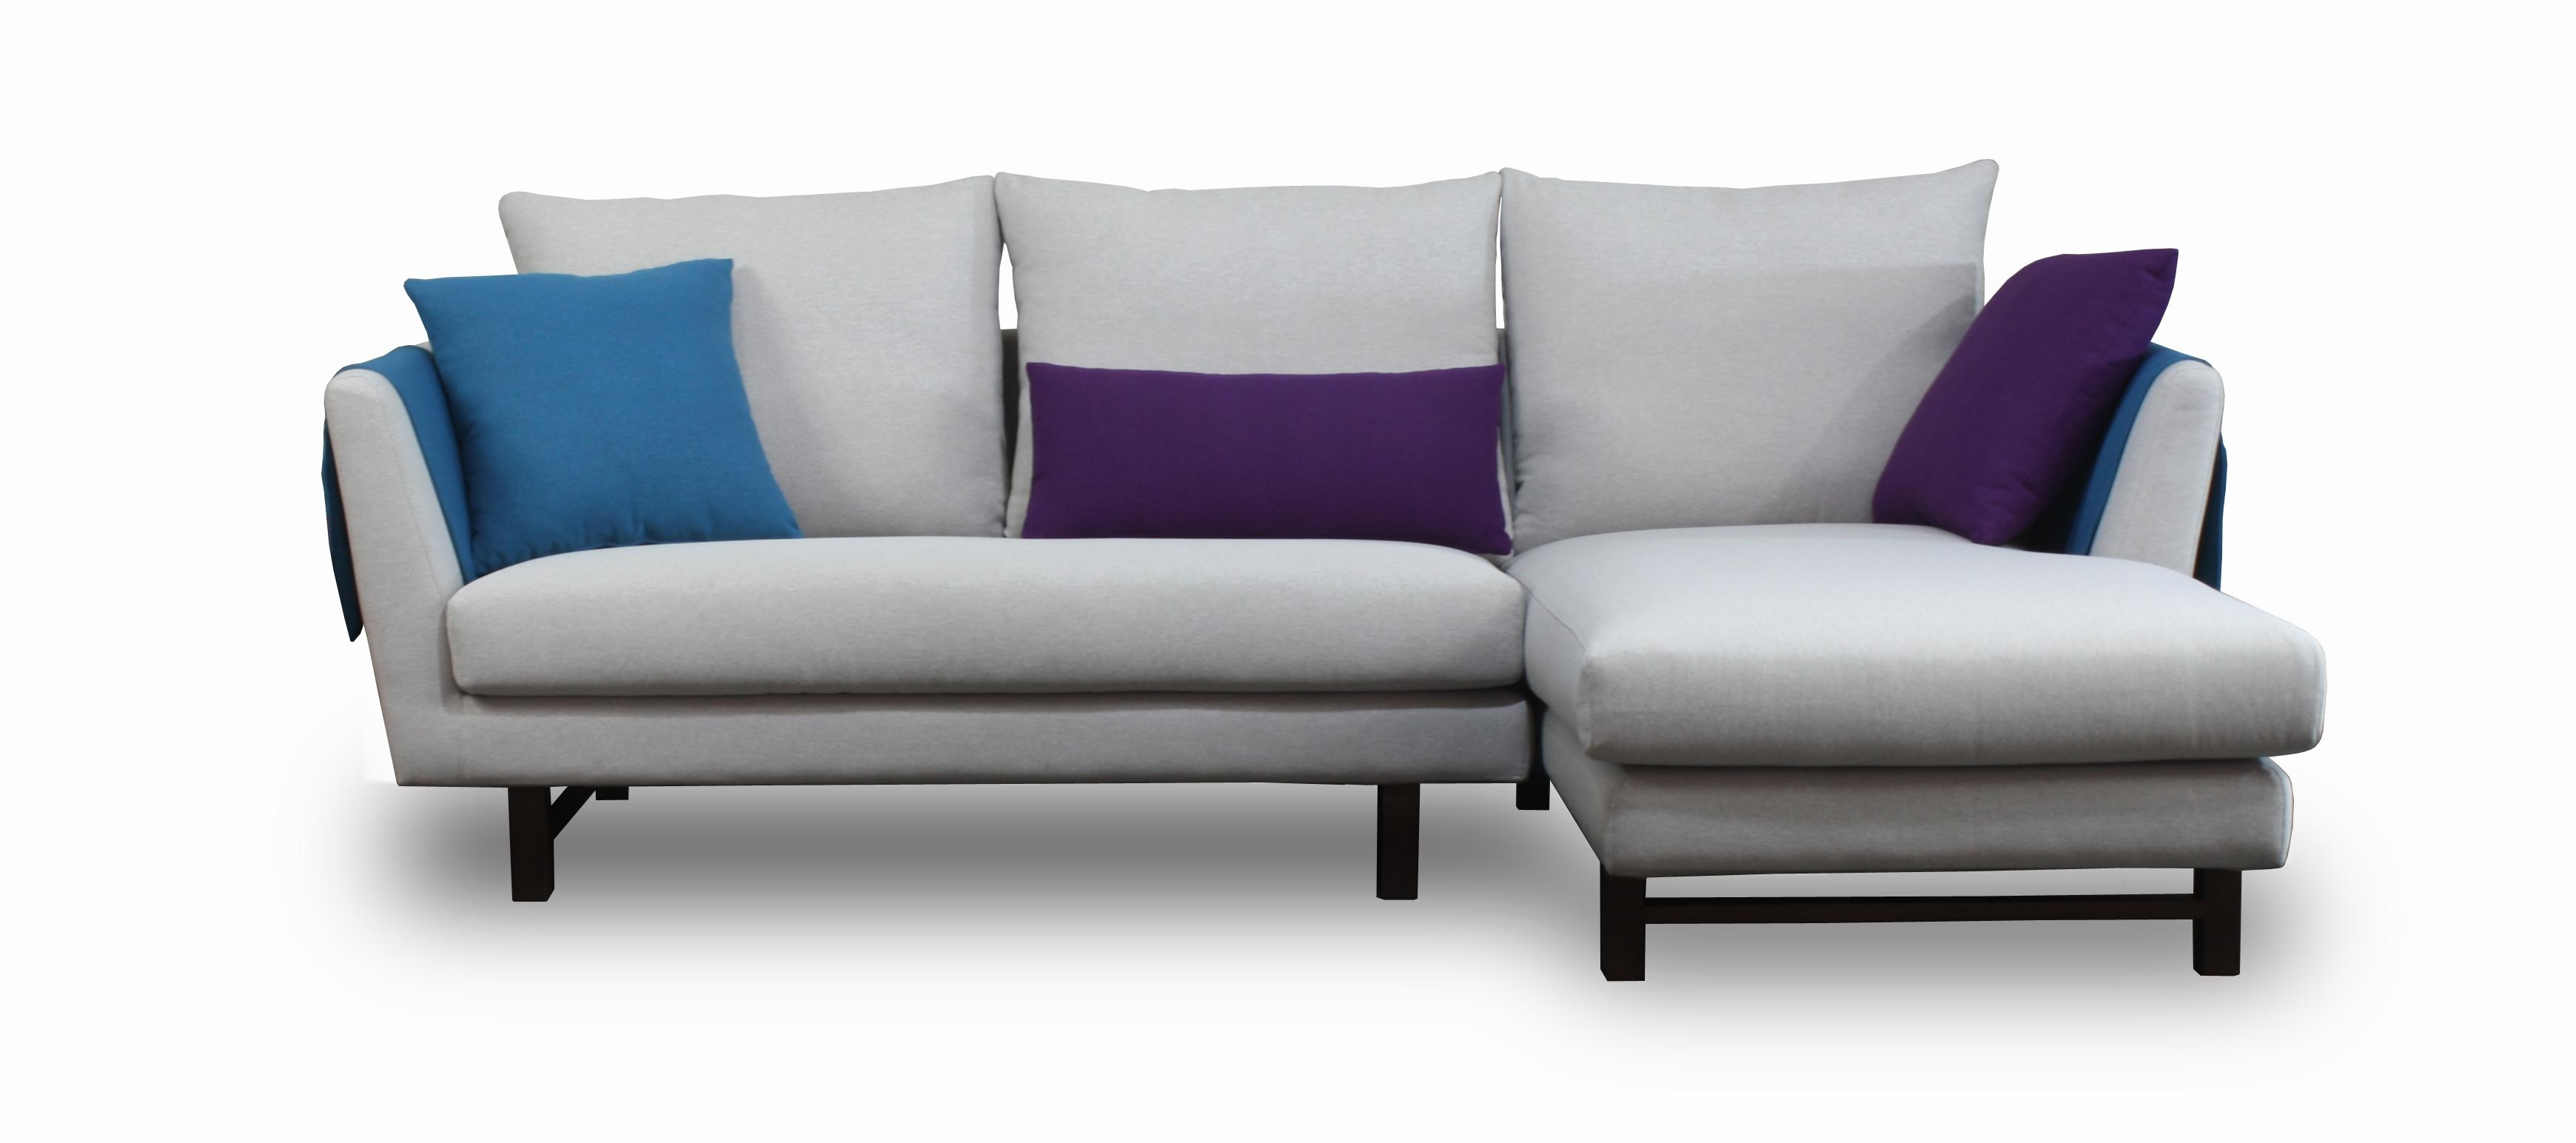 Trend Scandinavian Sofa 64 For Living Room Sofa Inspiration With For Sofa Trend (Image 20 of 20)